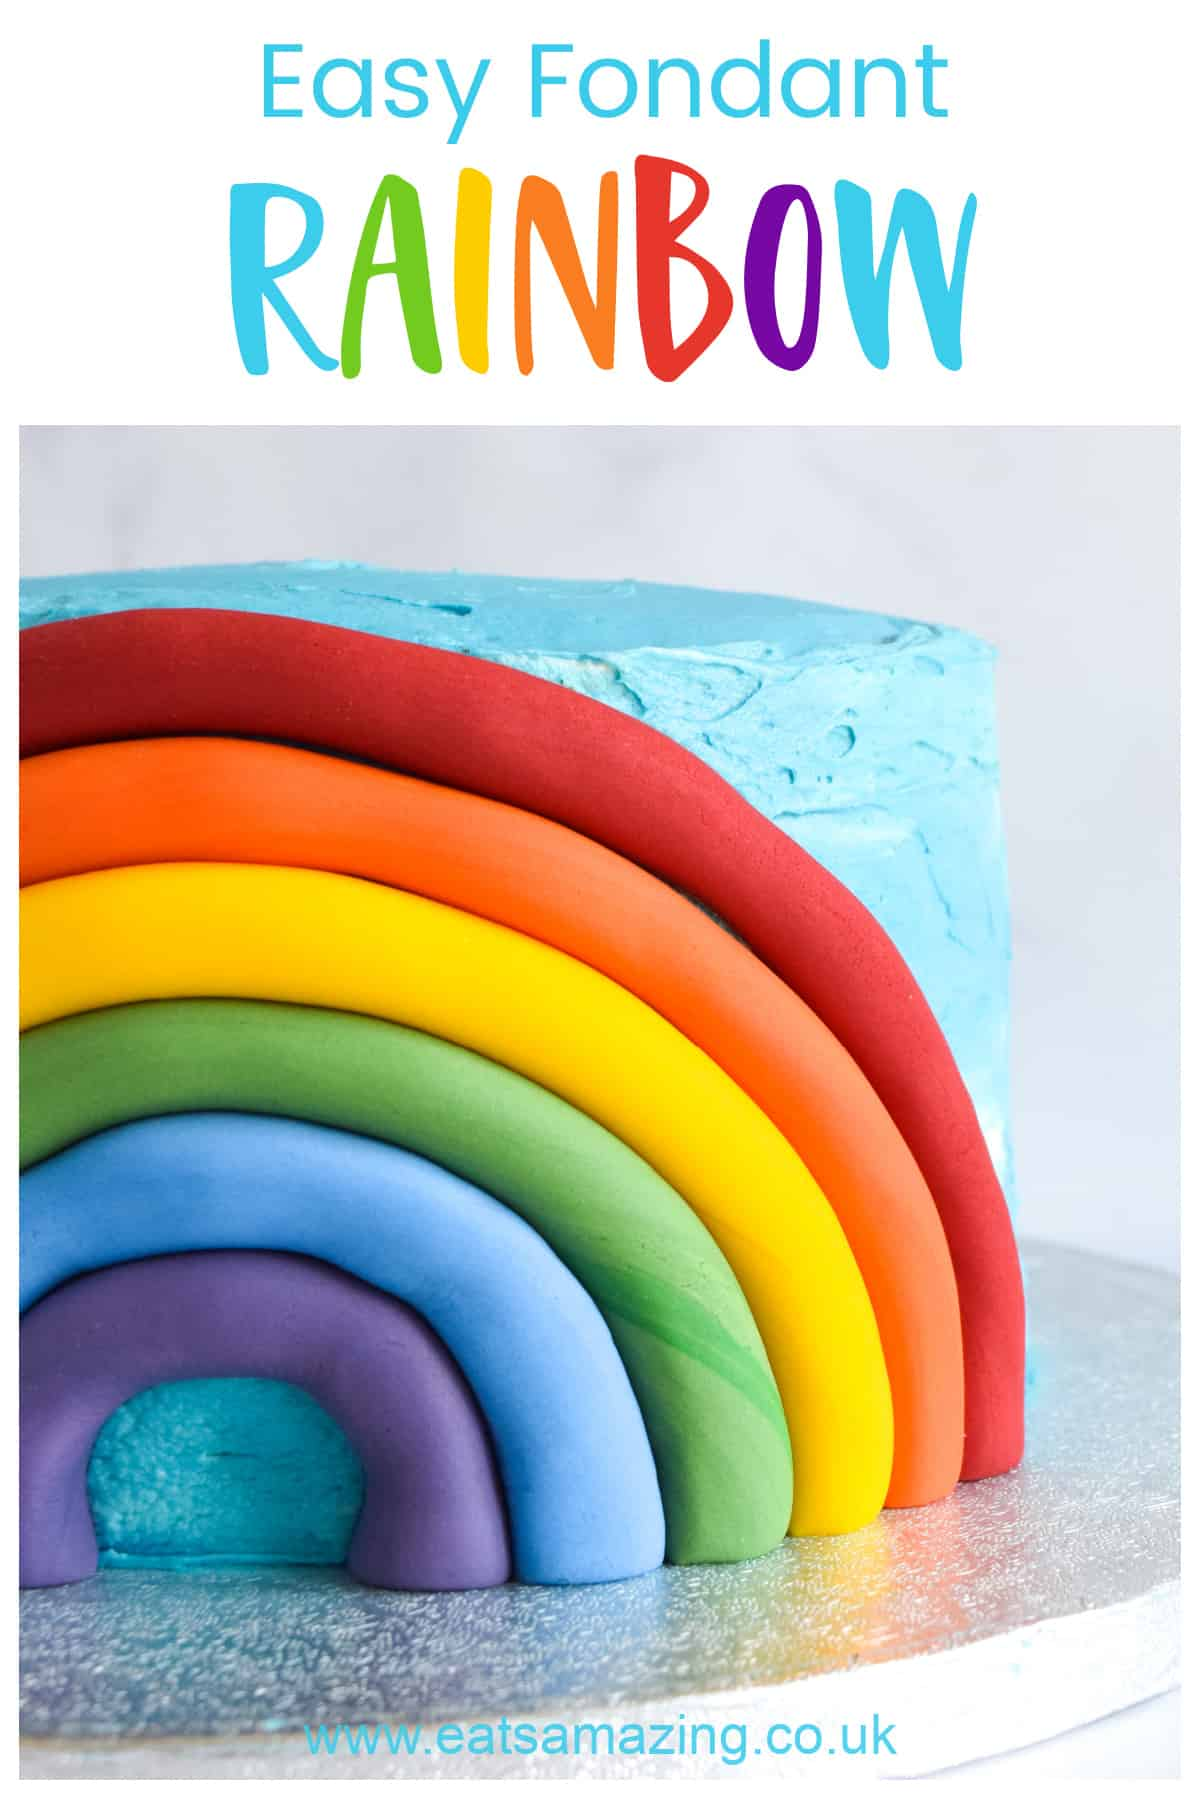 How to make a quick and easy fondant rainbow cake decoration - with step by step photo tutorial